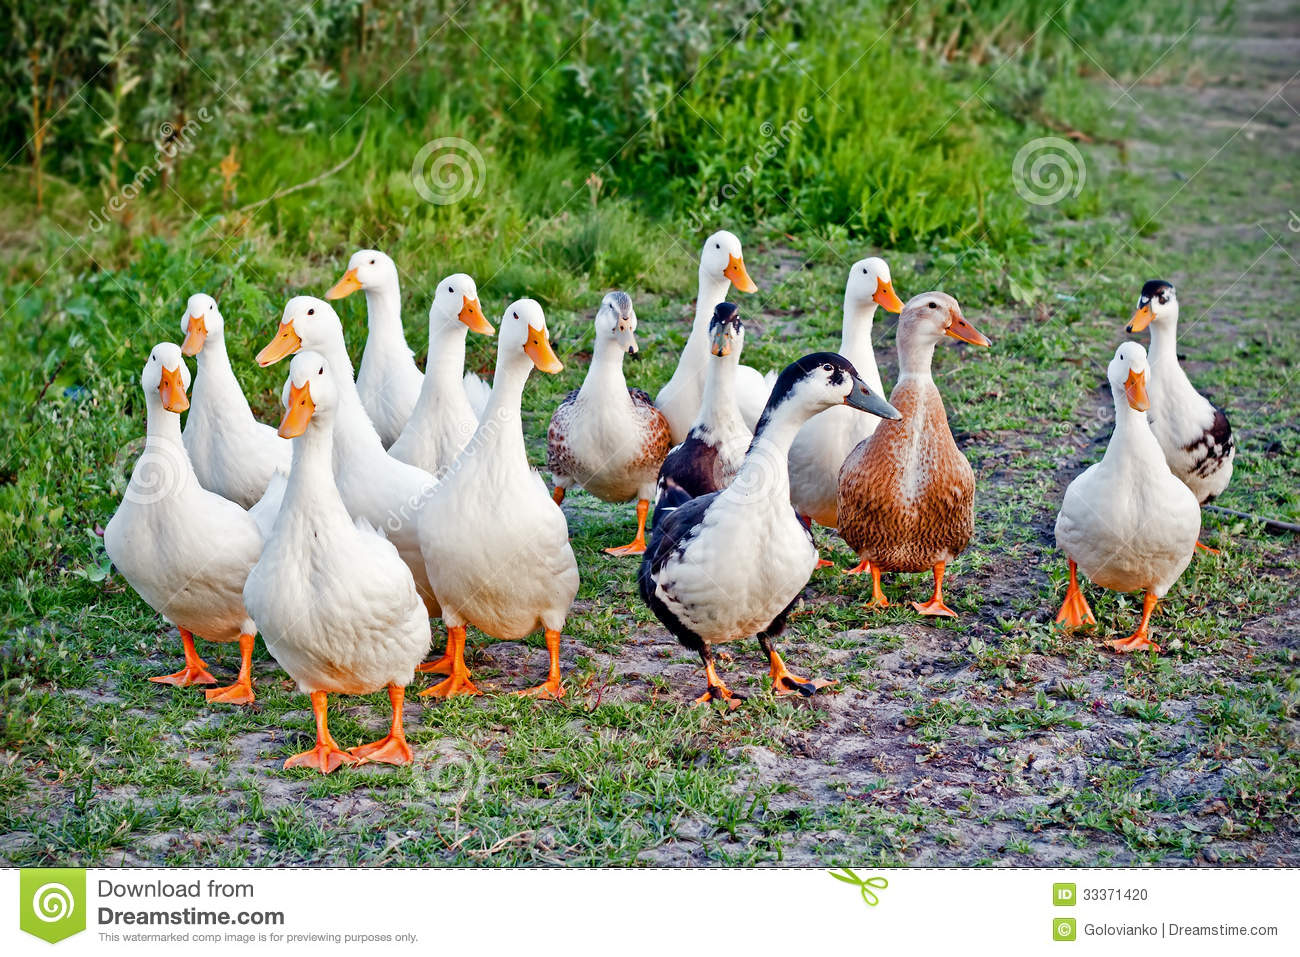 Ducks Flock Stock Photo - Image: 33371420